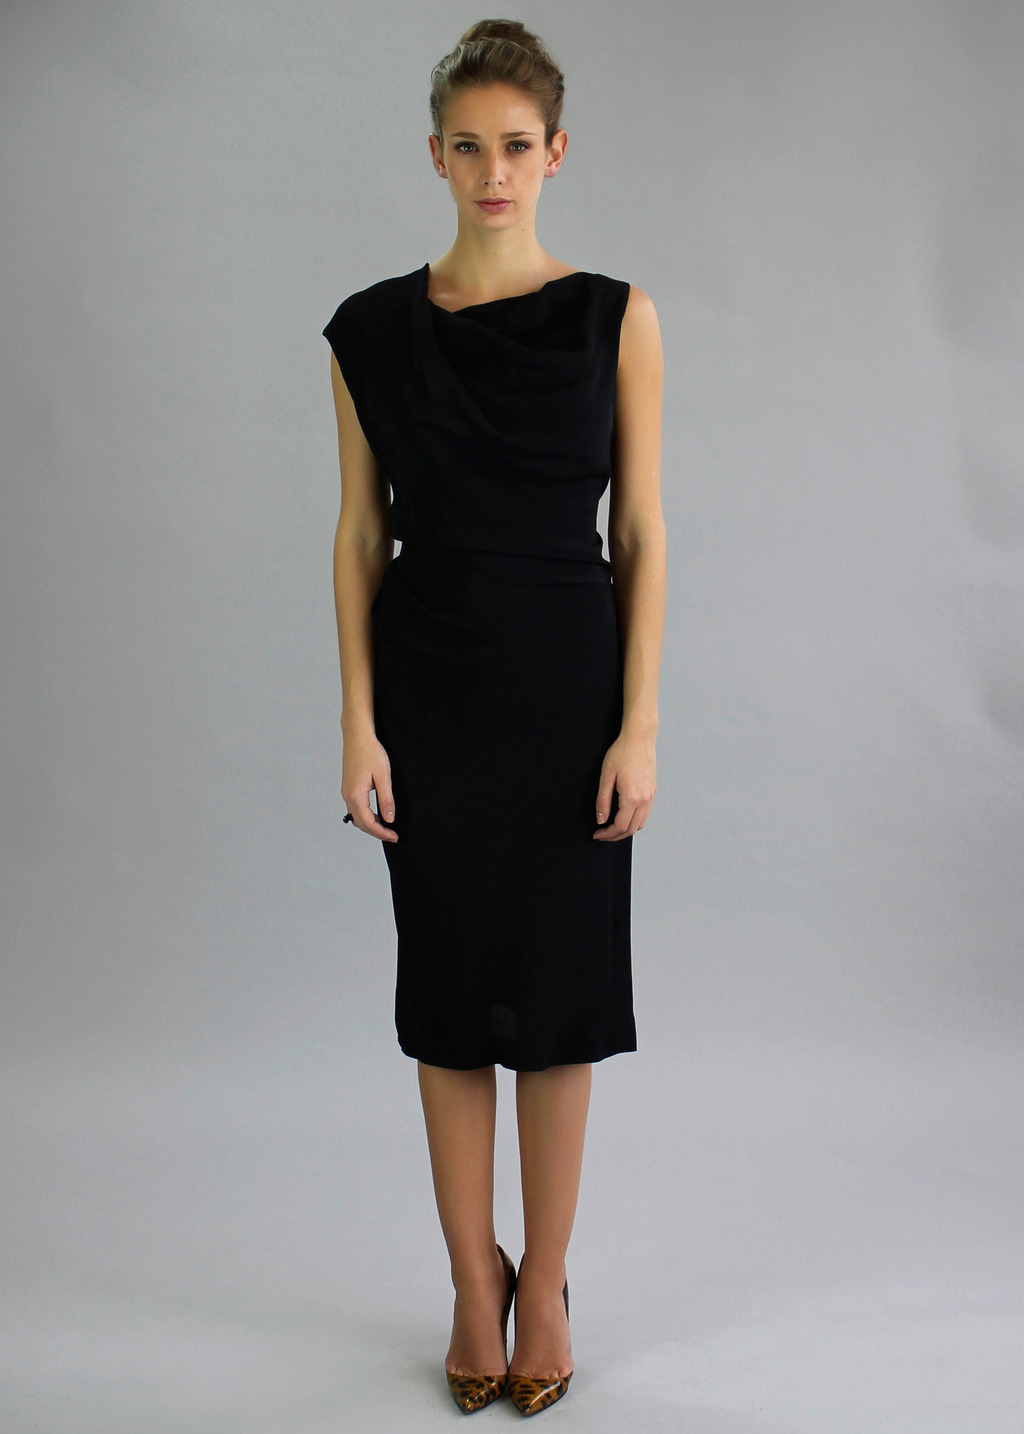 Black Alto Dress - style: shift; length: below the knee; pattern: plain; sleeve style: sleeveless; neckline: asymmetric; predominant colour: black; occasions: evening, occasion; fit: body skimming; fibres: viscose/rayon - 100%; sleeve length: sleeveless; texture group: silky - light; pattern type: fabric; season: a/w 2013